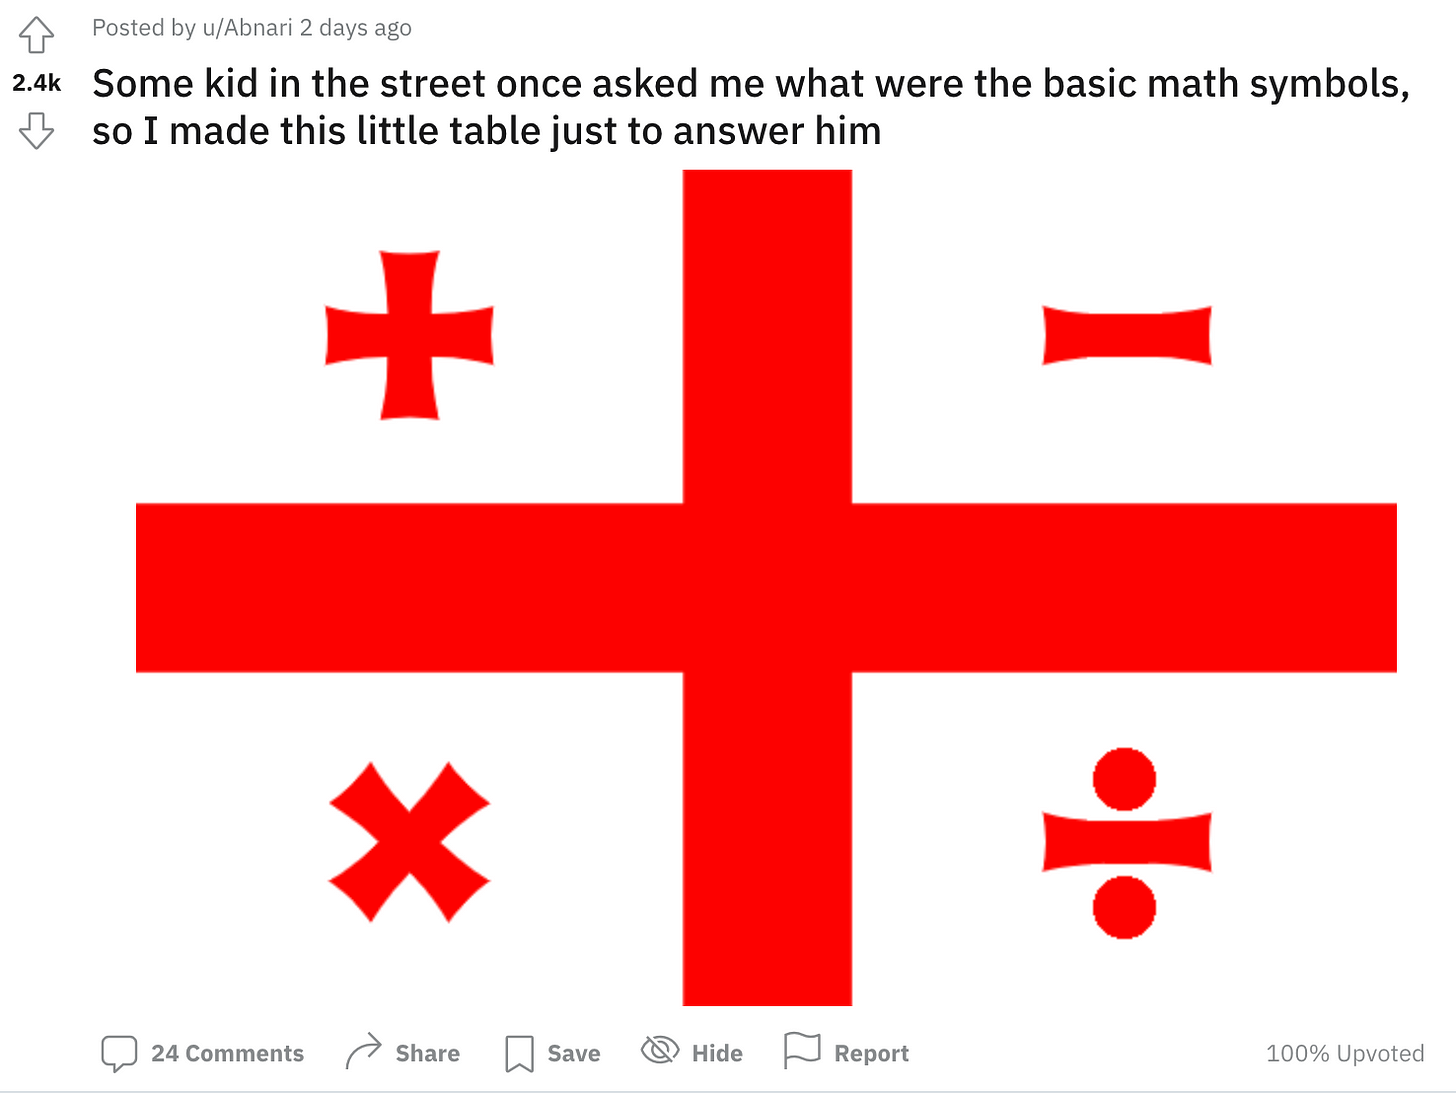 """A Reddit post reading """"Some kid in the street once asked me what were the basic math symbols, so I made this little table just to answer him"""" with a graphic that looks like the national flag of Georgia but the four quadrant symbols are plus, minus, times and divide."""